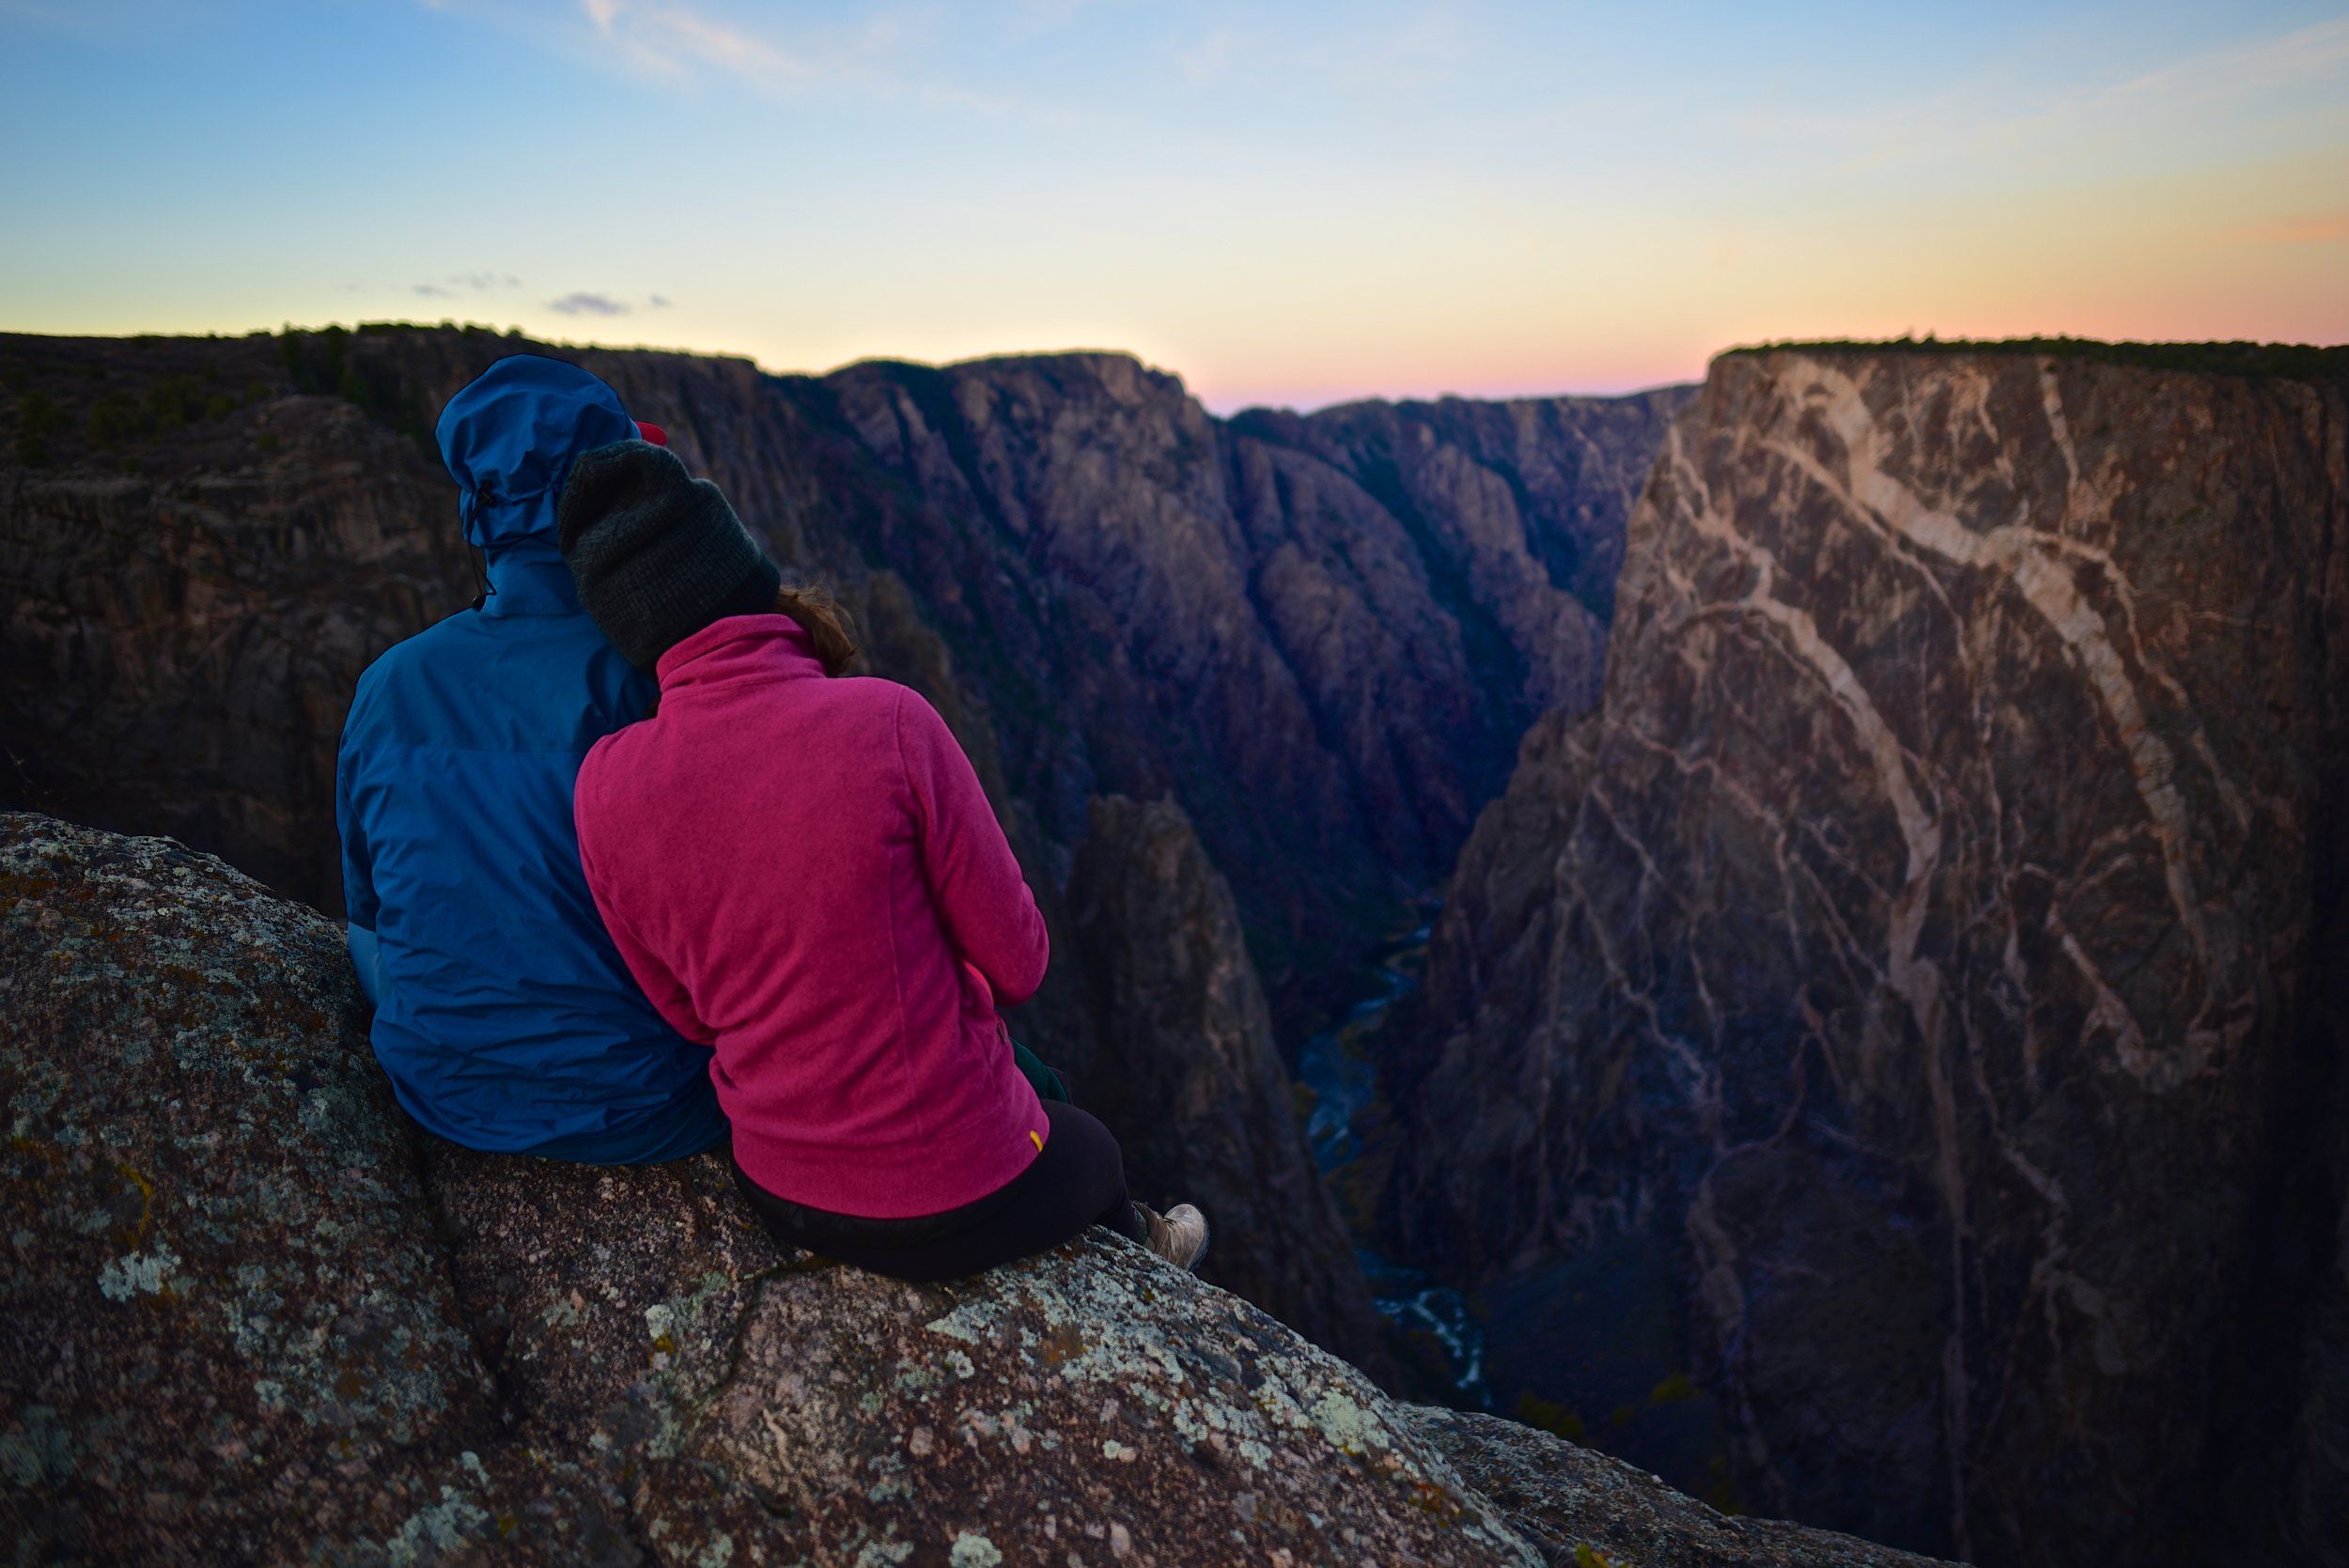 Watching the sunrise at the Painted Wall in Black Canyon of the Gunnison National Park